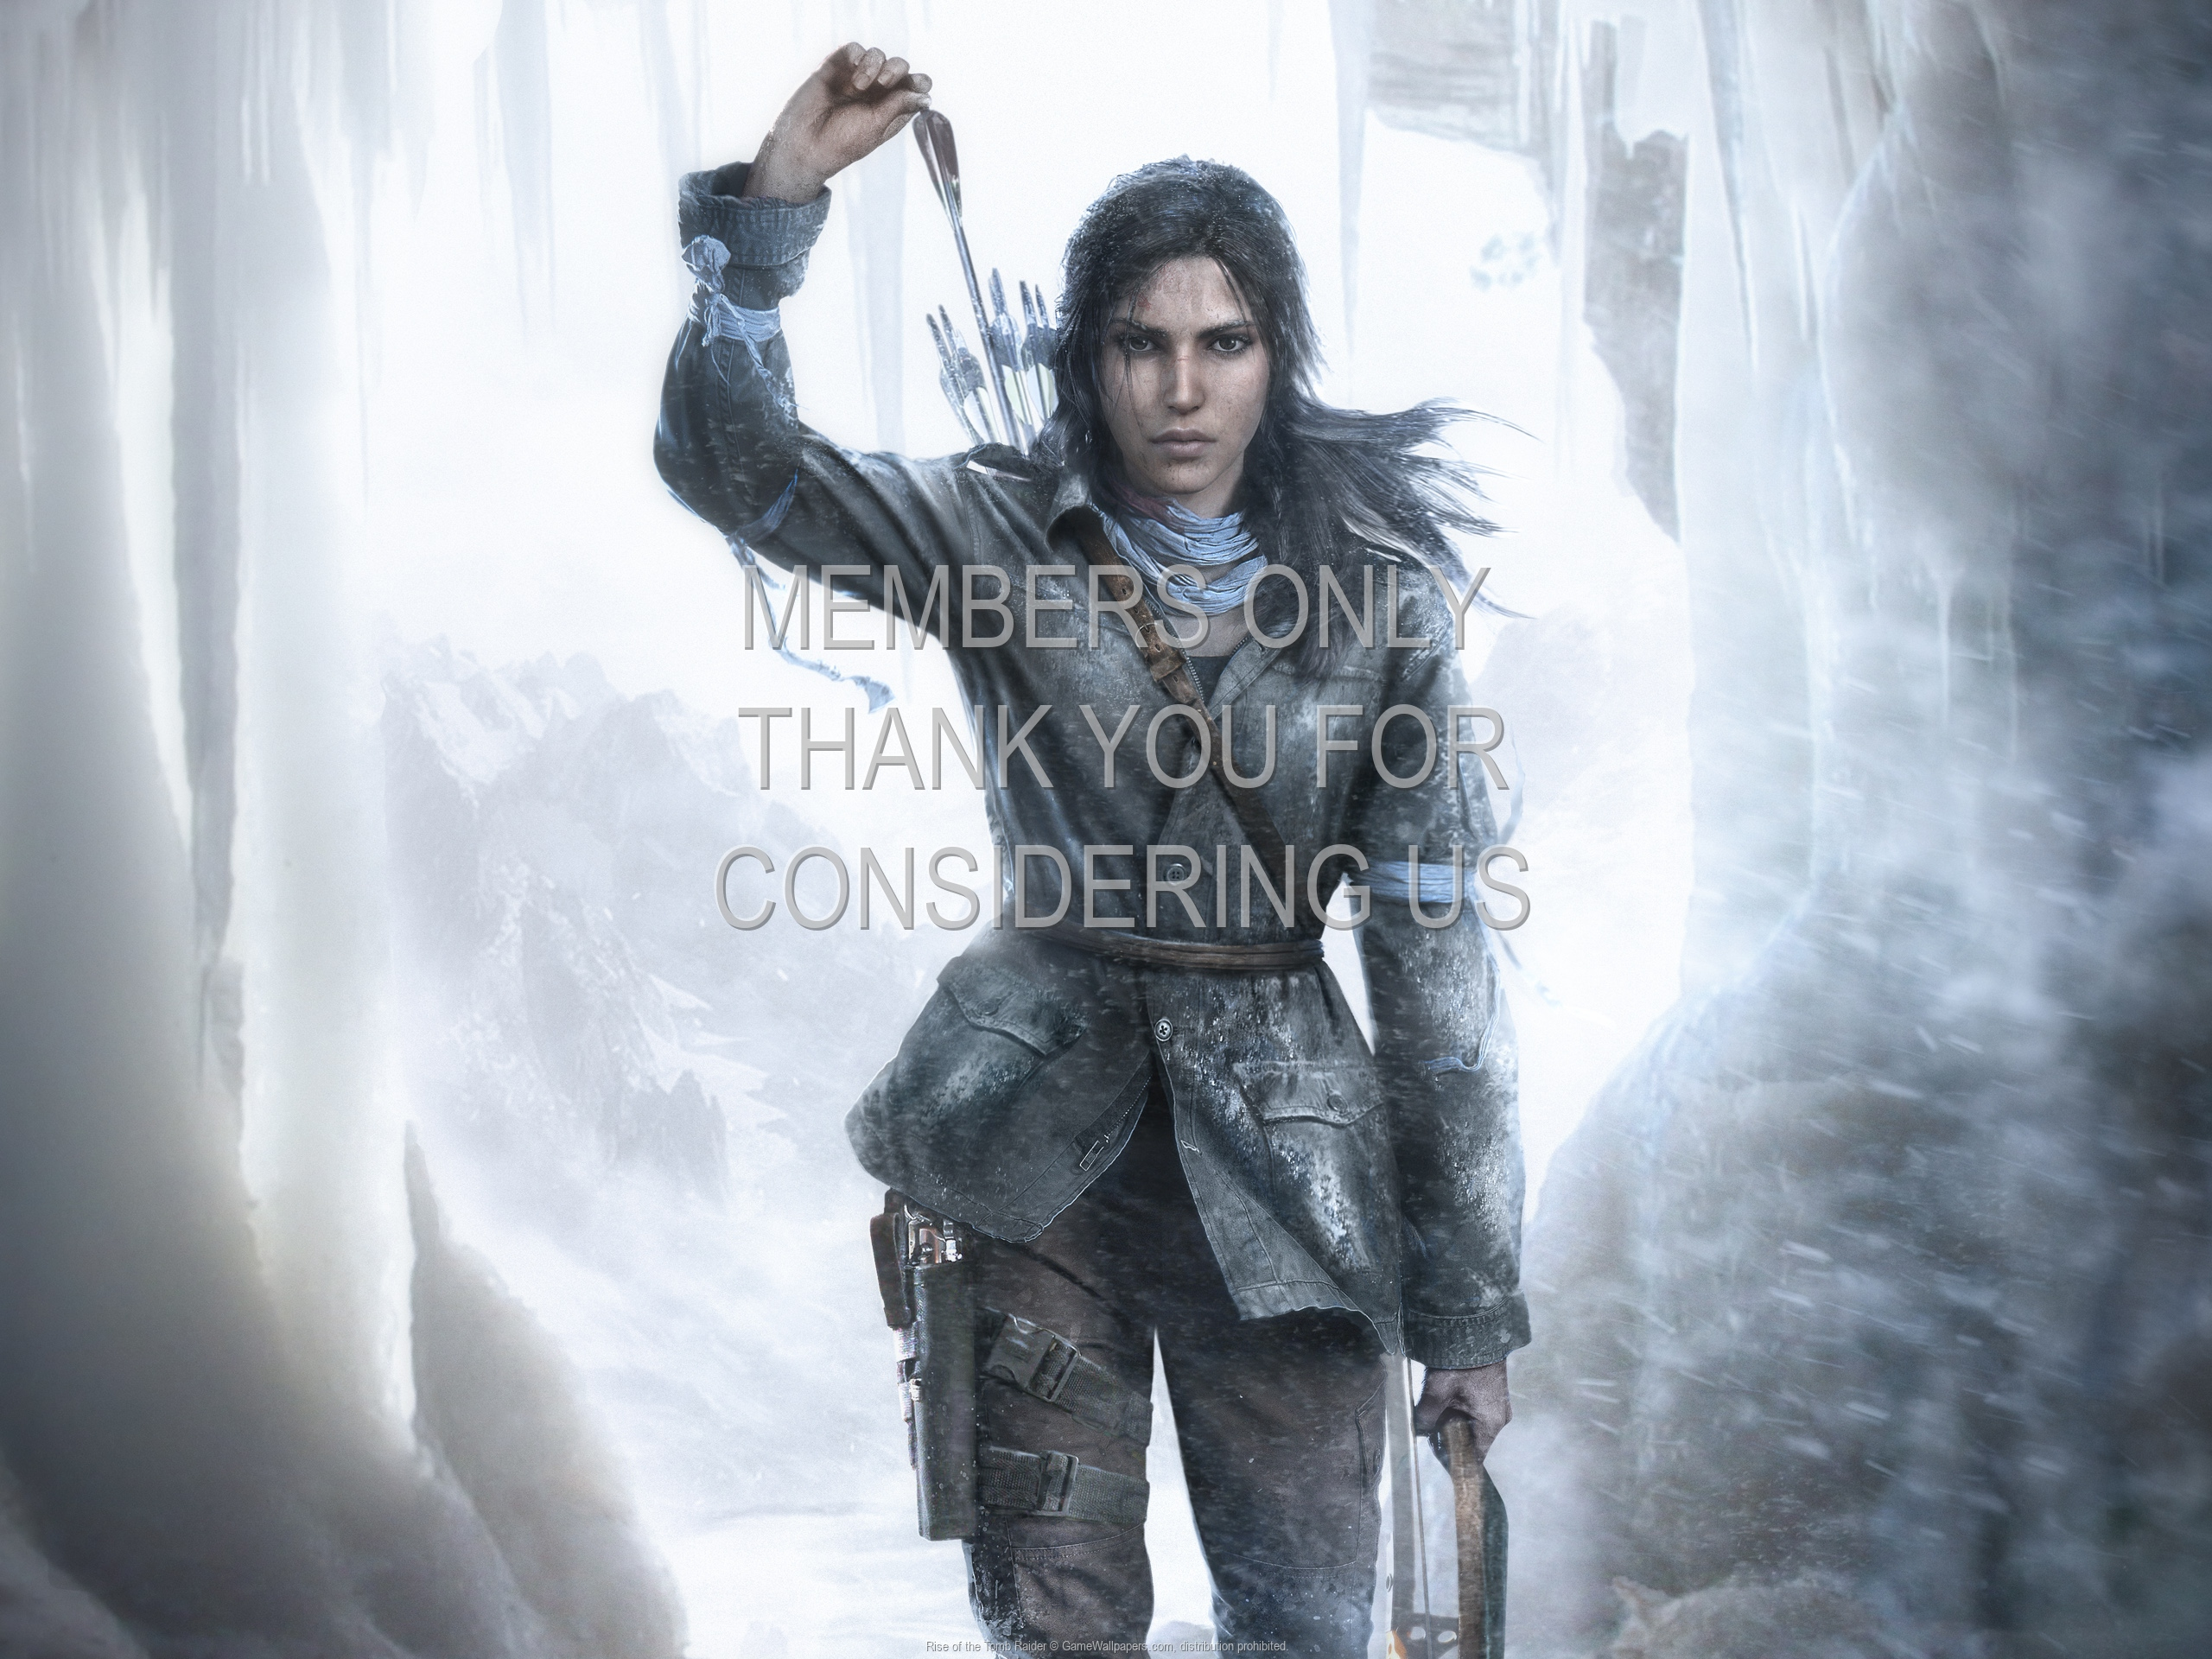 Rise of the Tomb Raider 1920x1080 Mobile wallpaper or background 06